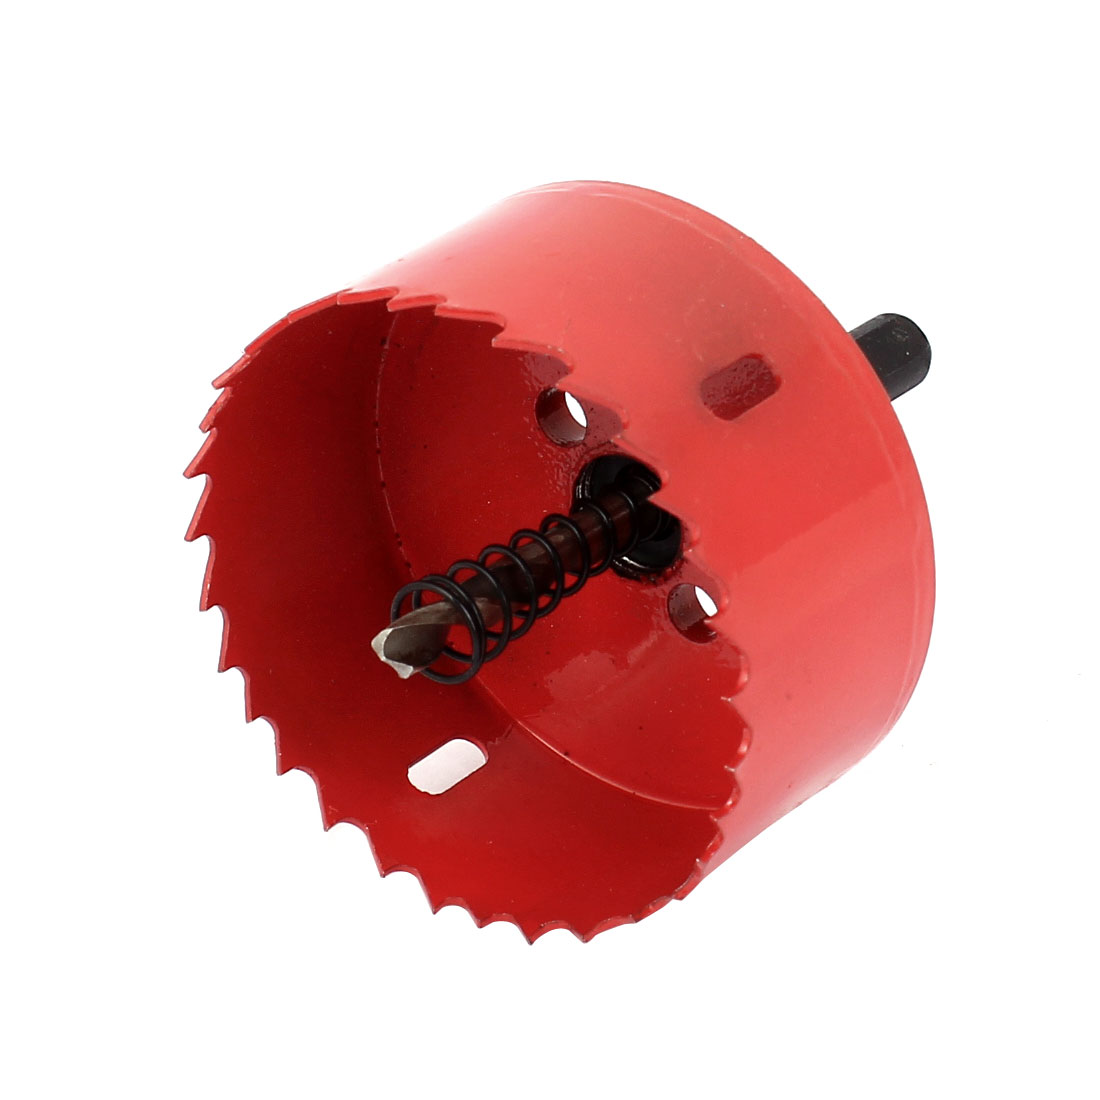 Подробнее о UXCELL 75Mm Cutting Dia Toothed Bi Metal Hole Saw Cutter Drill Bit Red For Wood Iron uxcell 42mm cutting dia 10mm shank twist drill bit bimetal hole saw cutter tool red